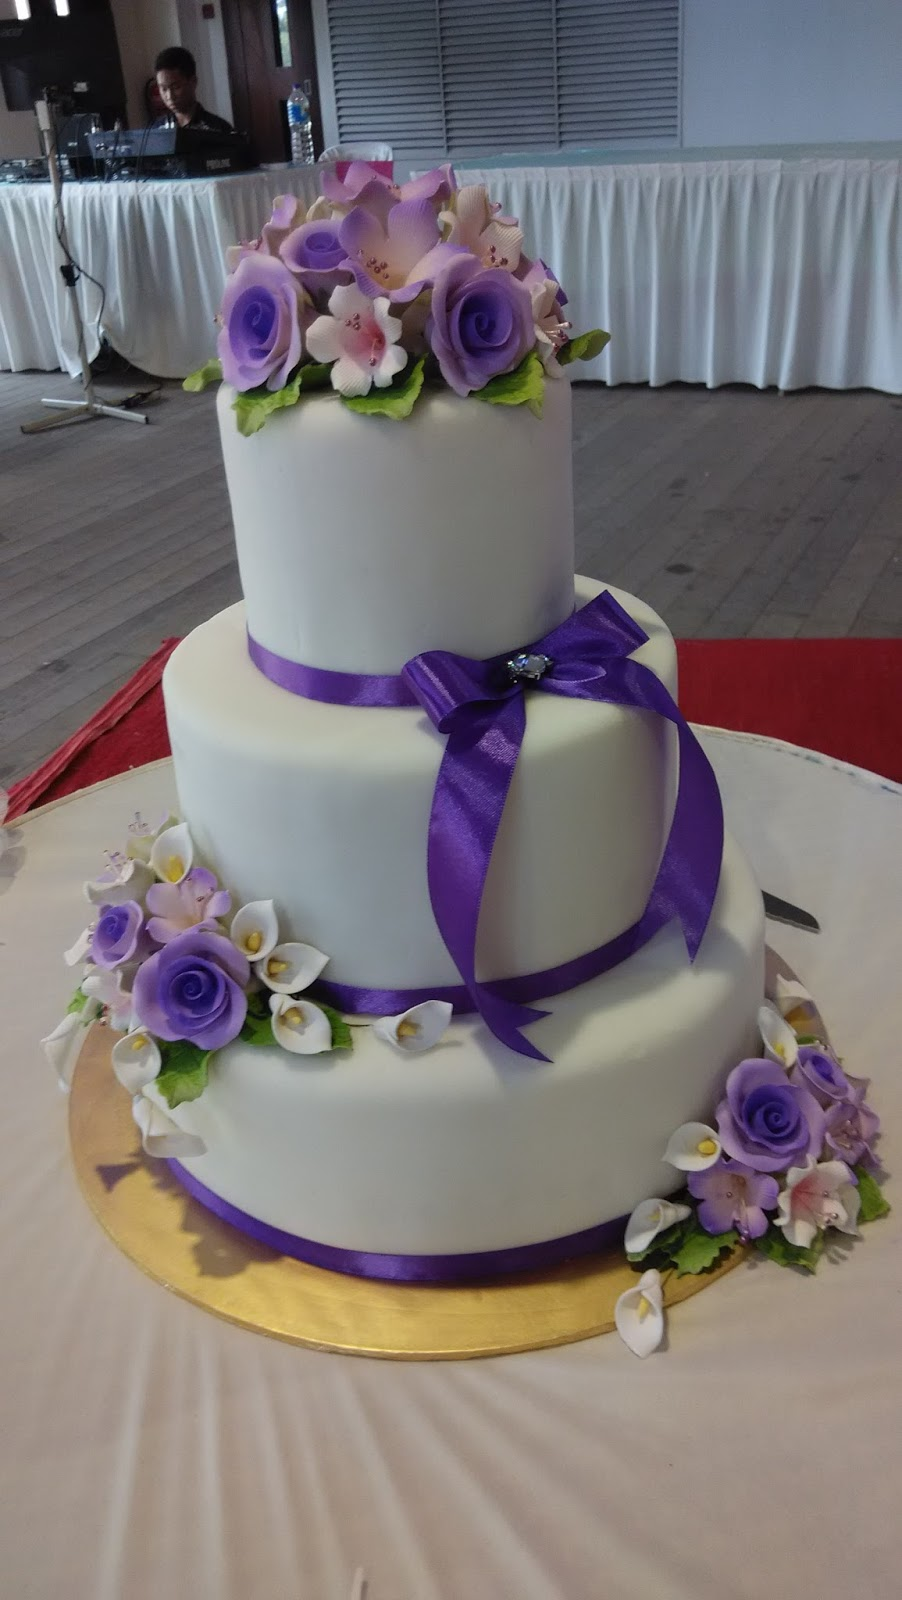 jujucupcakes: Royal Blue and Purple themed wedding cakes